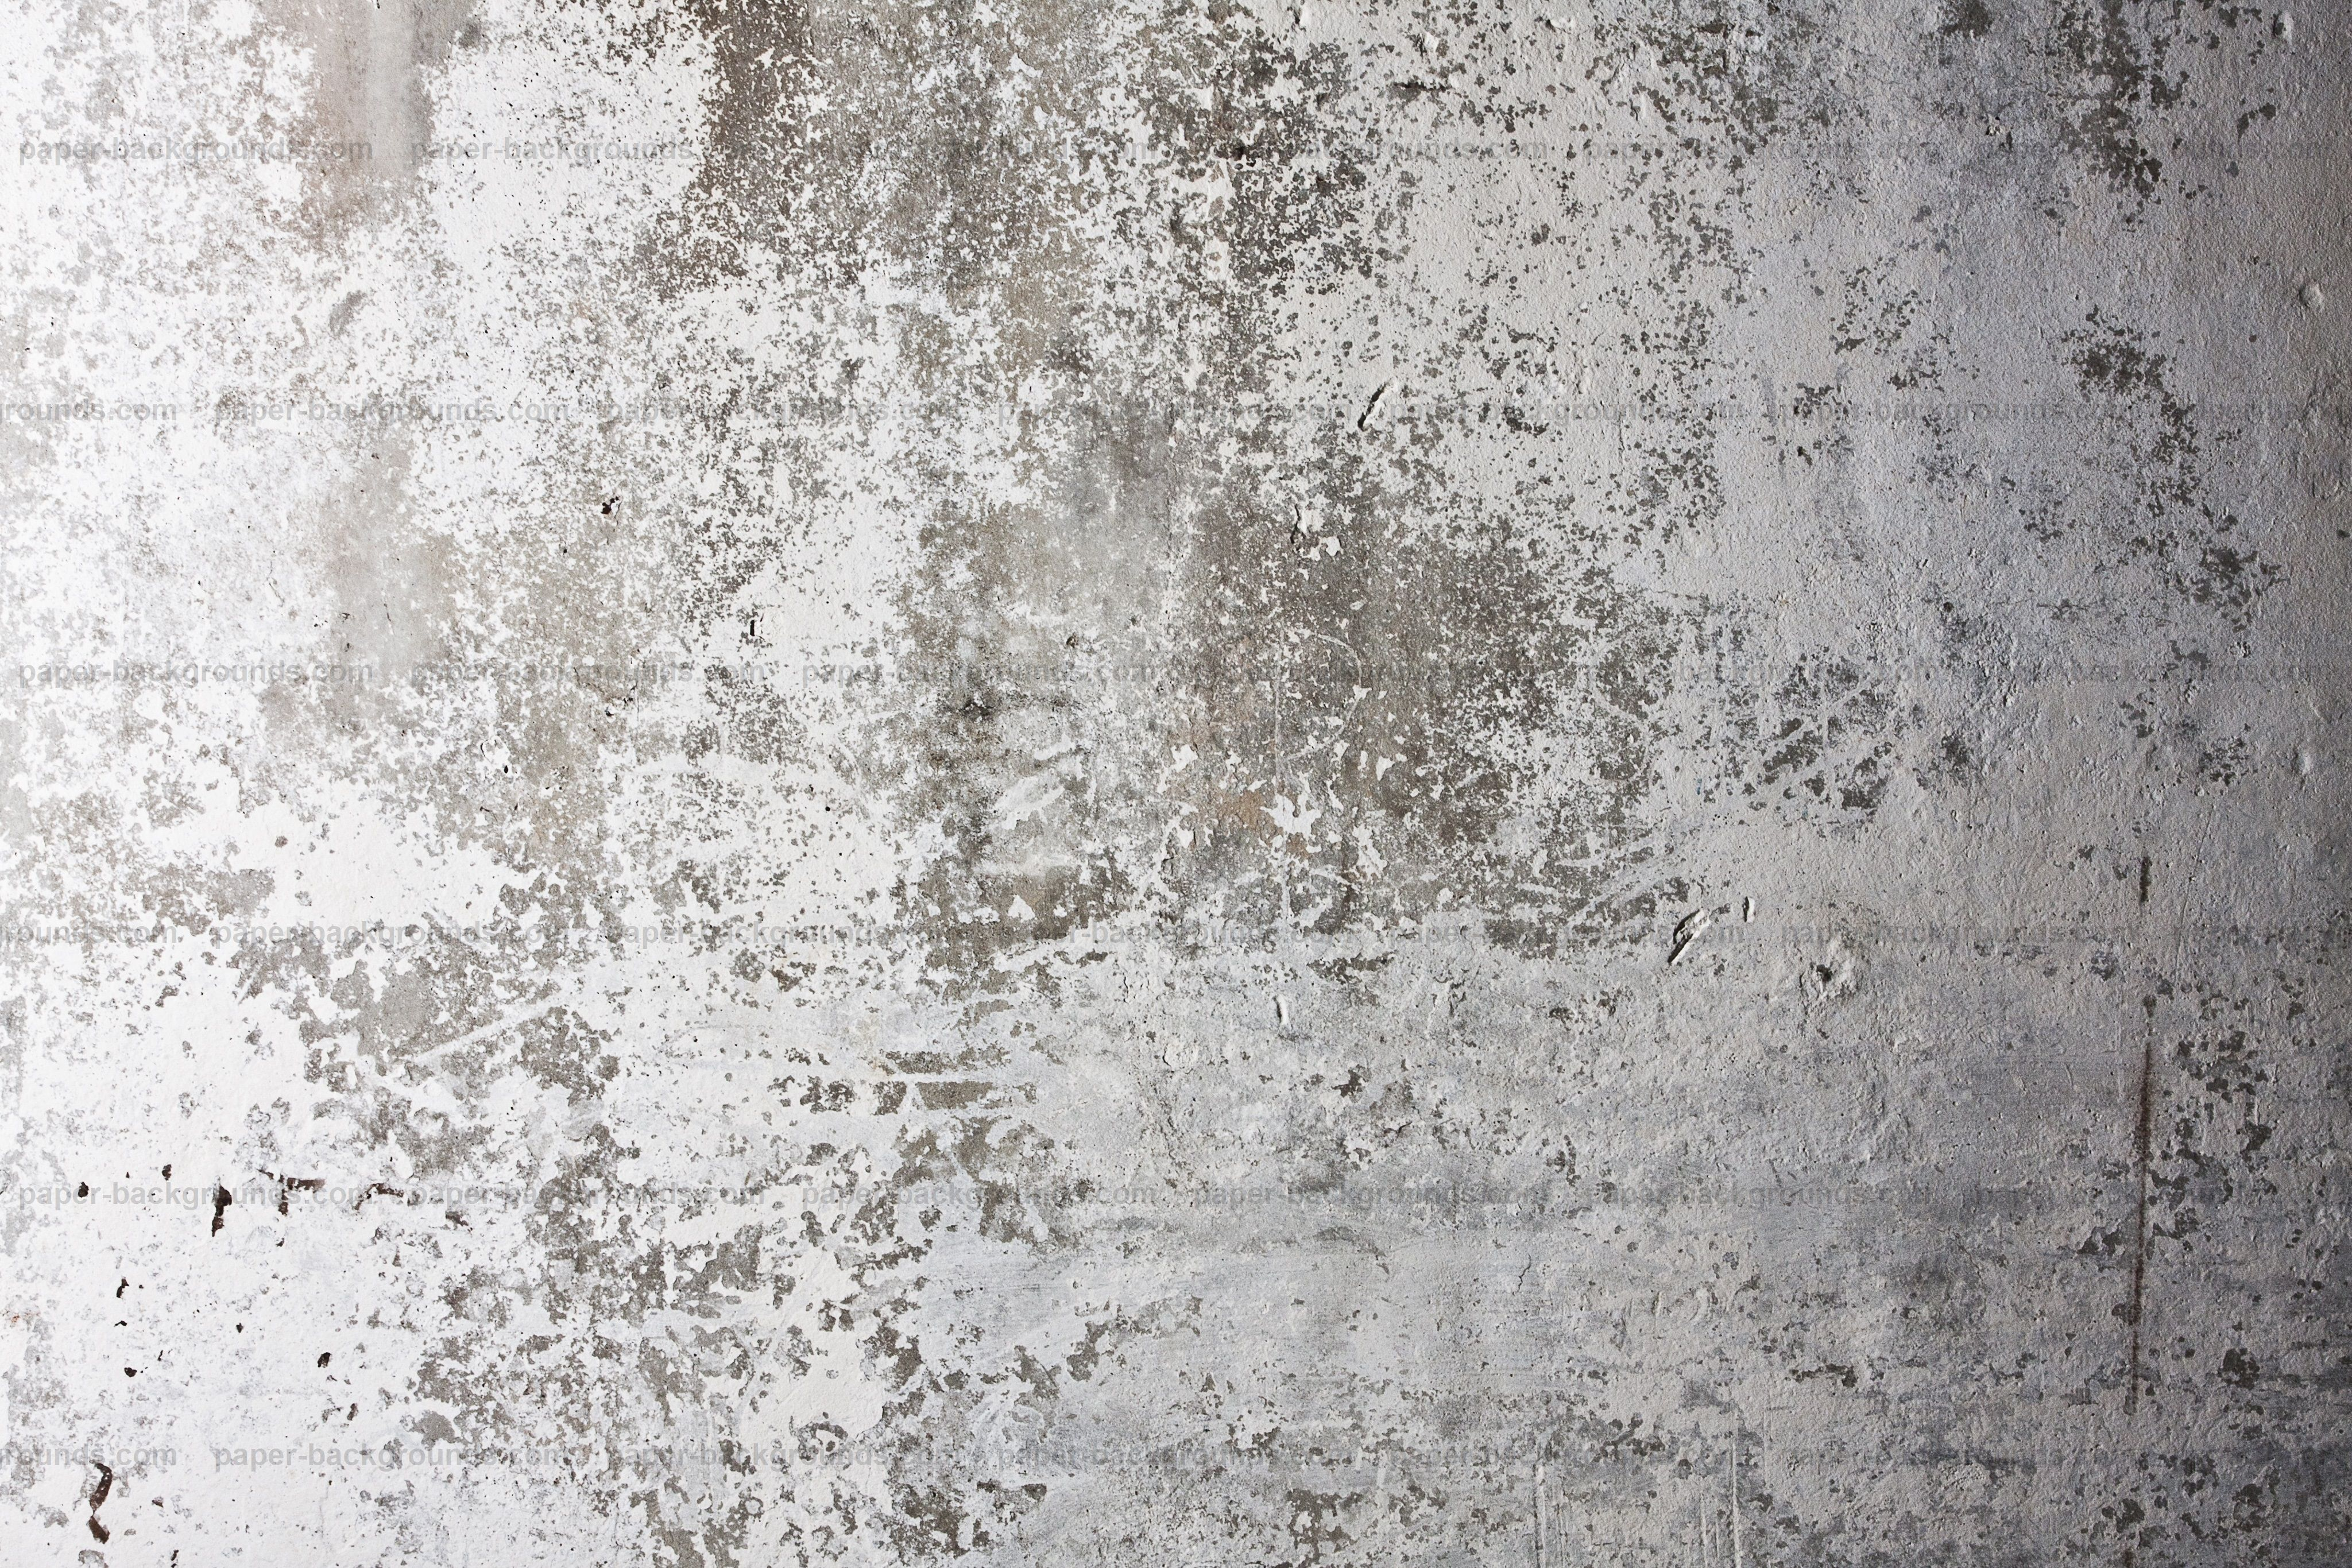 4096x2731 Paper Backgrounds | White Grunge Wall Background